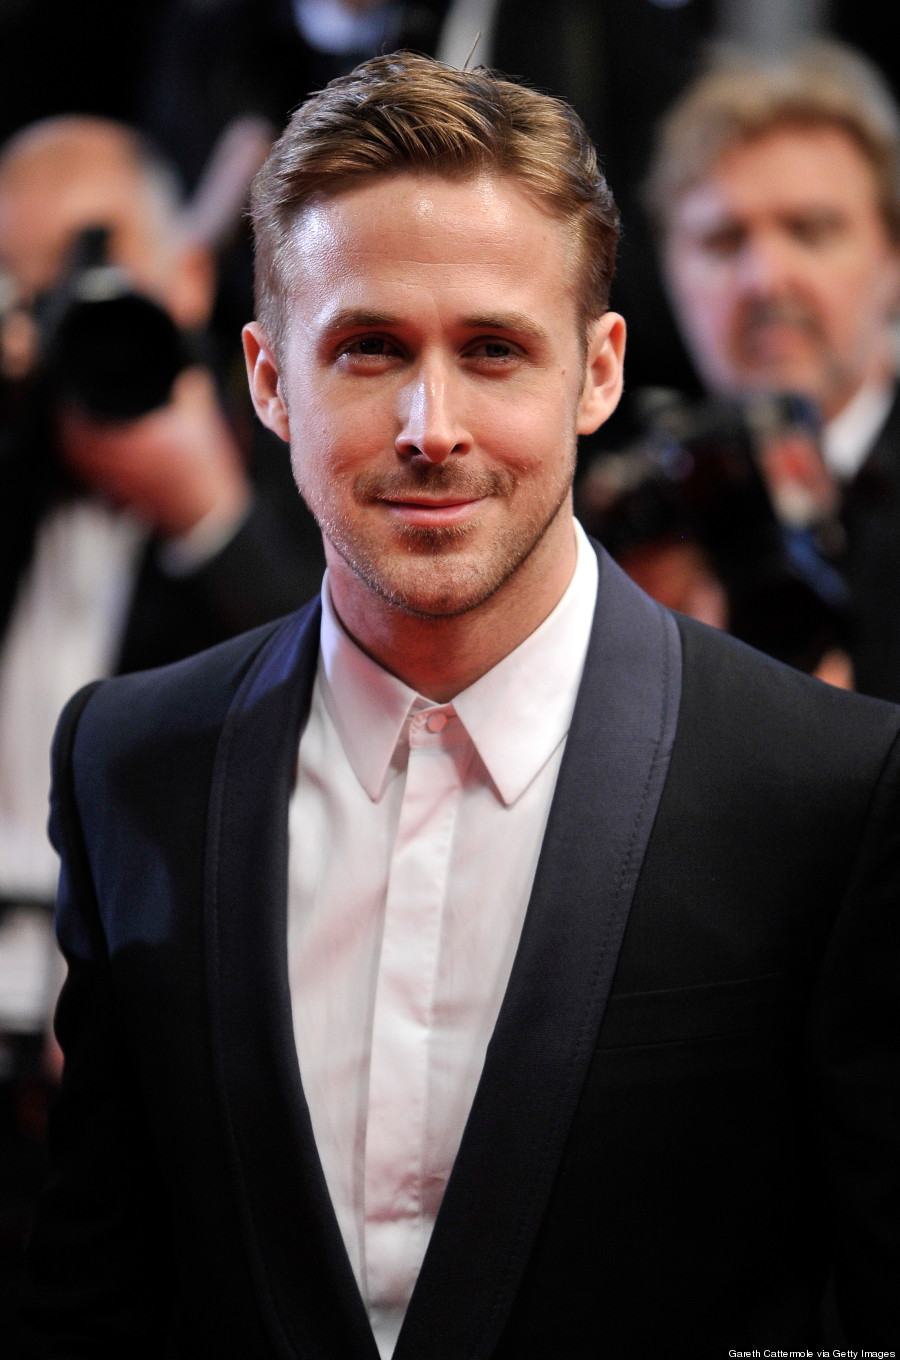 Ryan Gosling Suit Ryan gosling